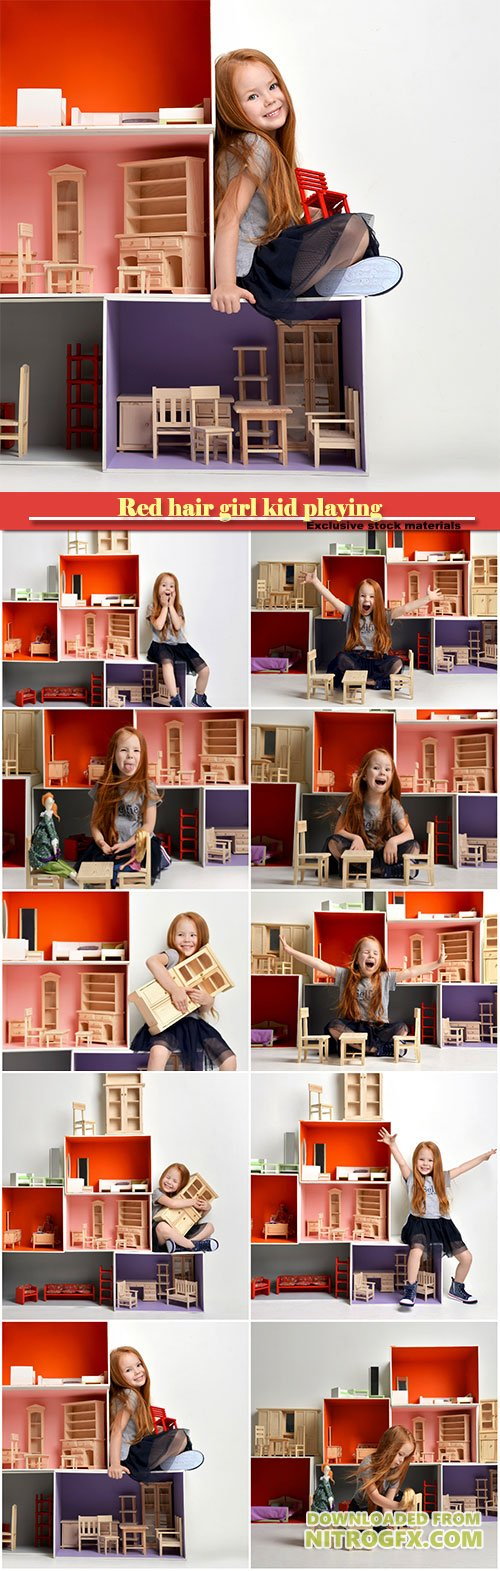 Red hair baby girl kid playing with dollhouse stuffed with mini furniture toys